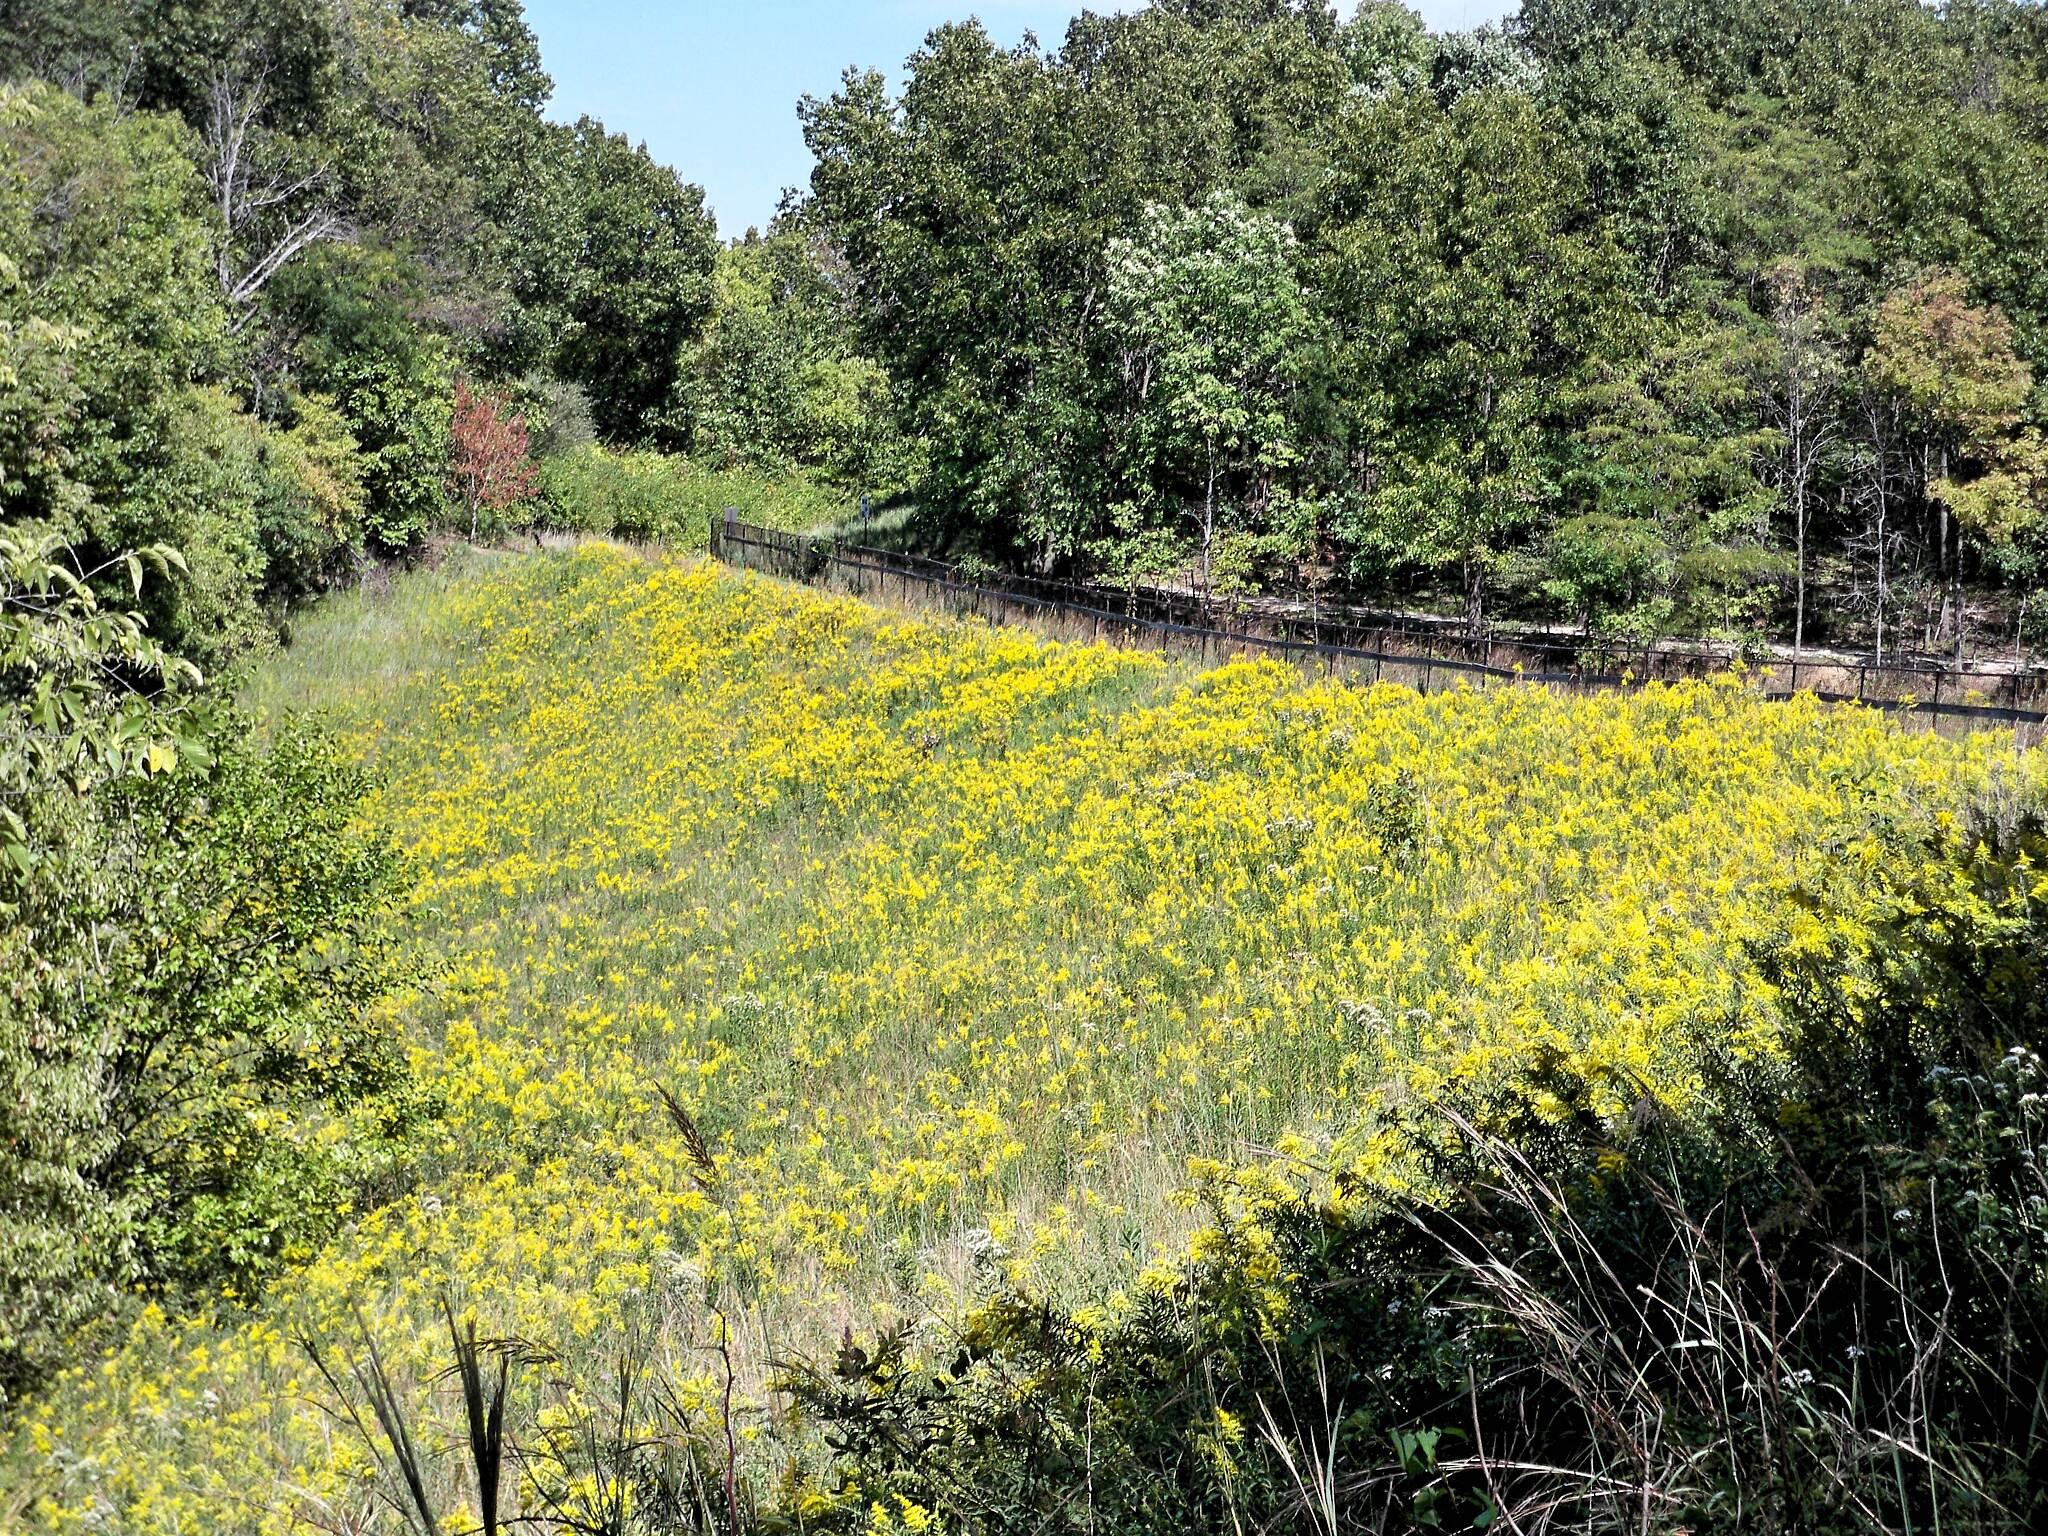 Conservation District Trail Goldenrod in Full Bloom September - on the spillway of the large fishing pond.